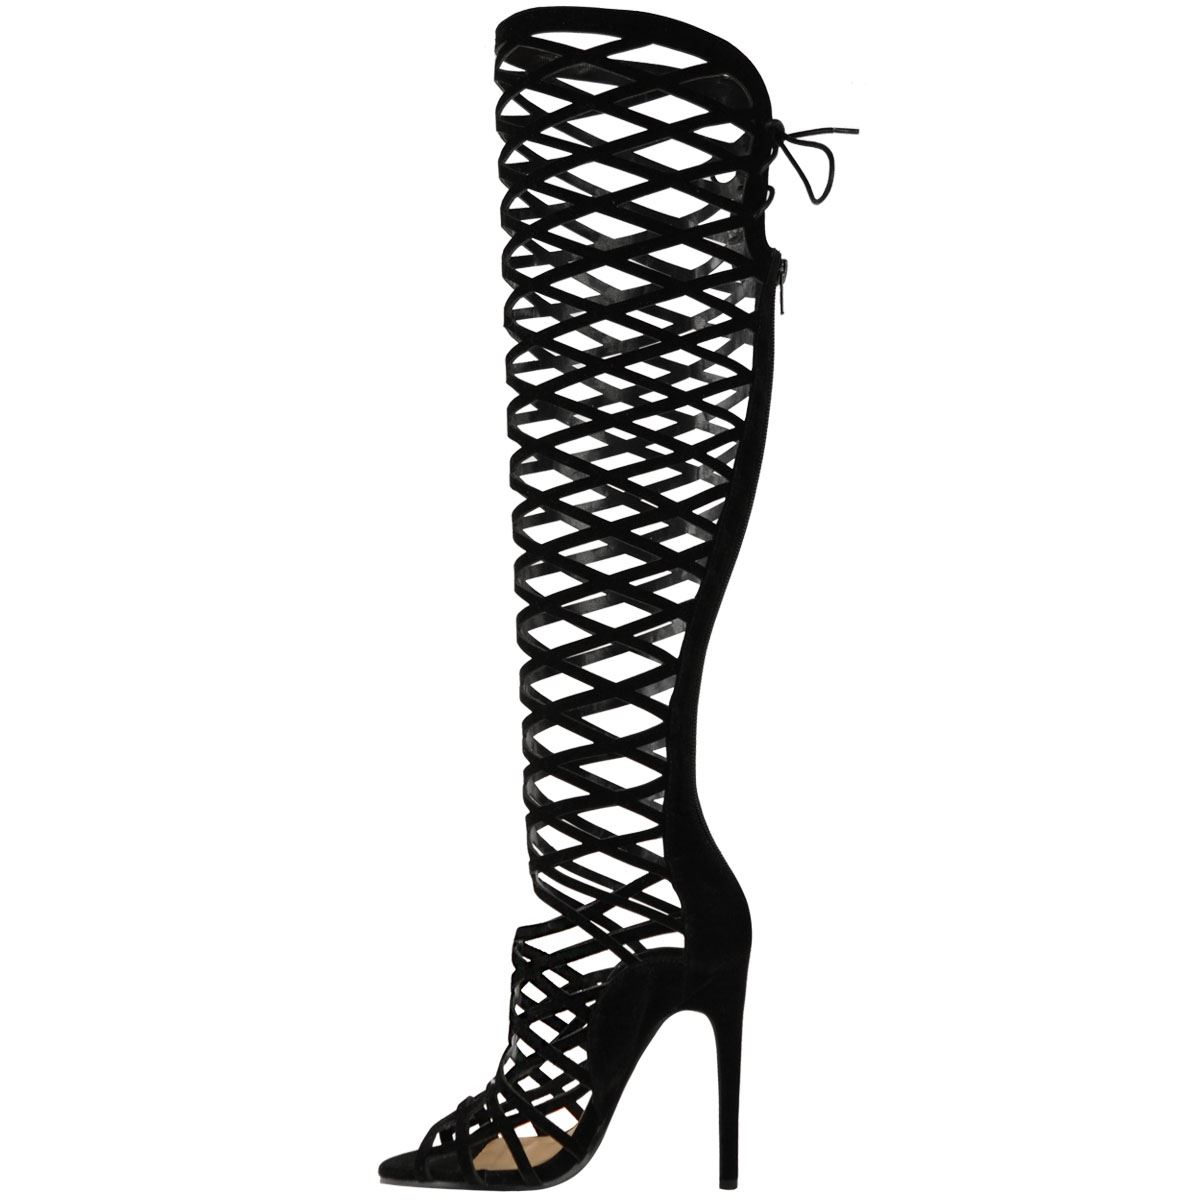 Womens Cut Out Lace Knee High Heel Gladiator Boots Ladies